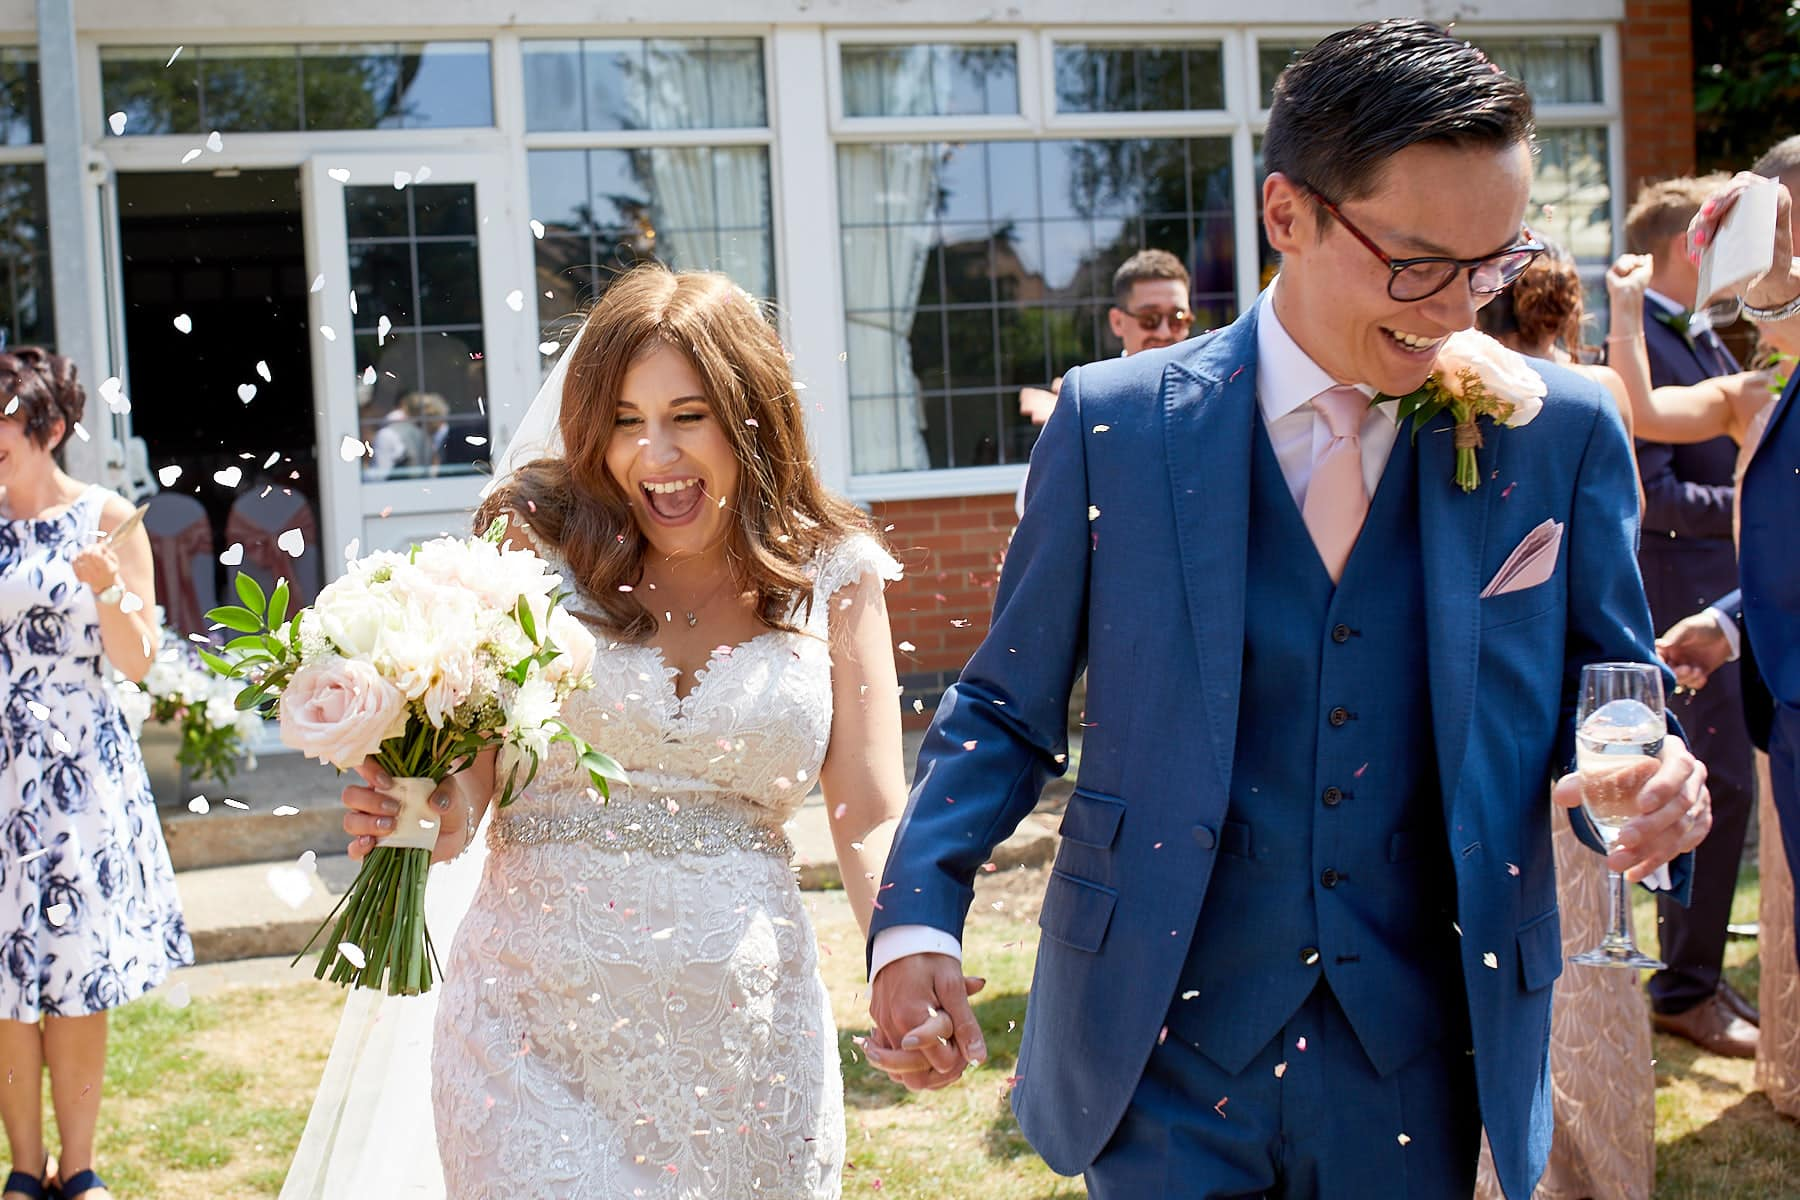 A couple walk through their guests throwing confetti on their wedding day in Skegness